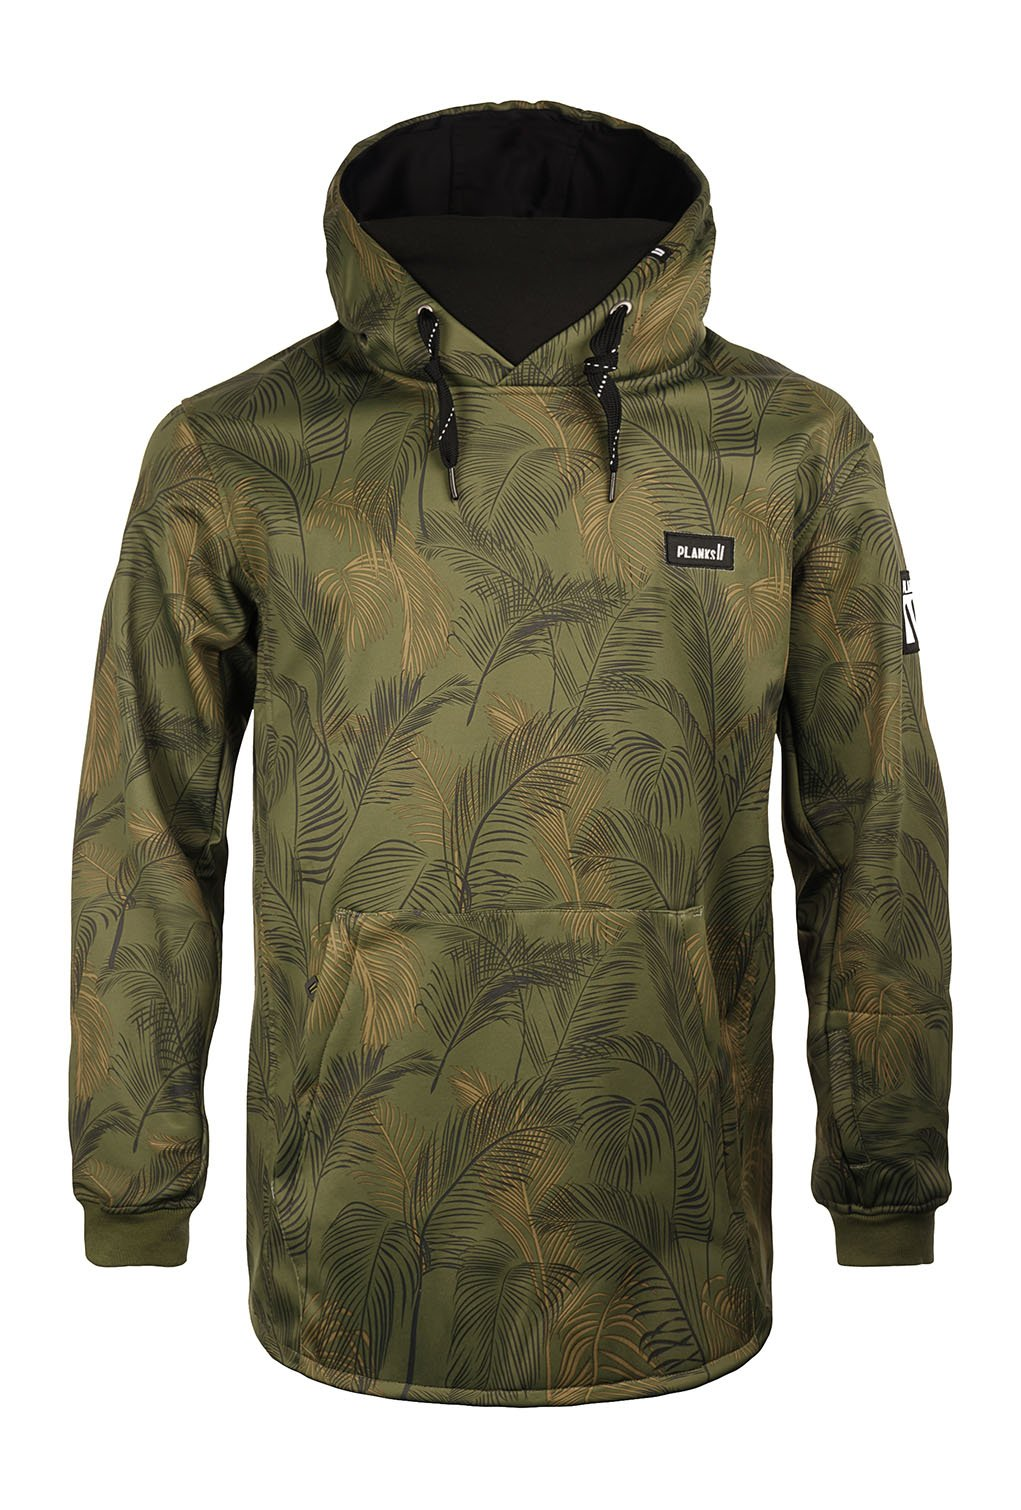 Planks Parkside Soft Shell Riding Hoodie | Planks Clothing